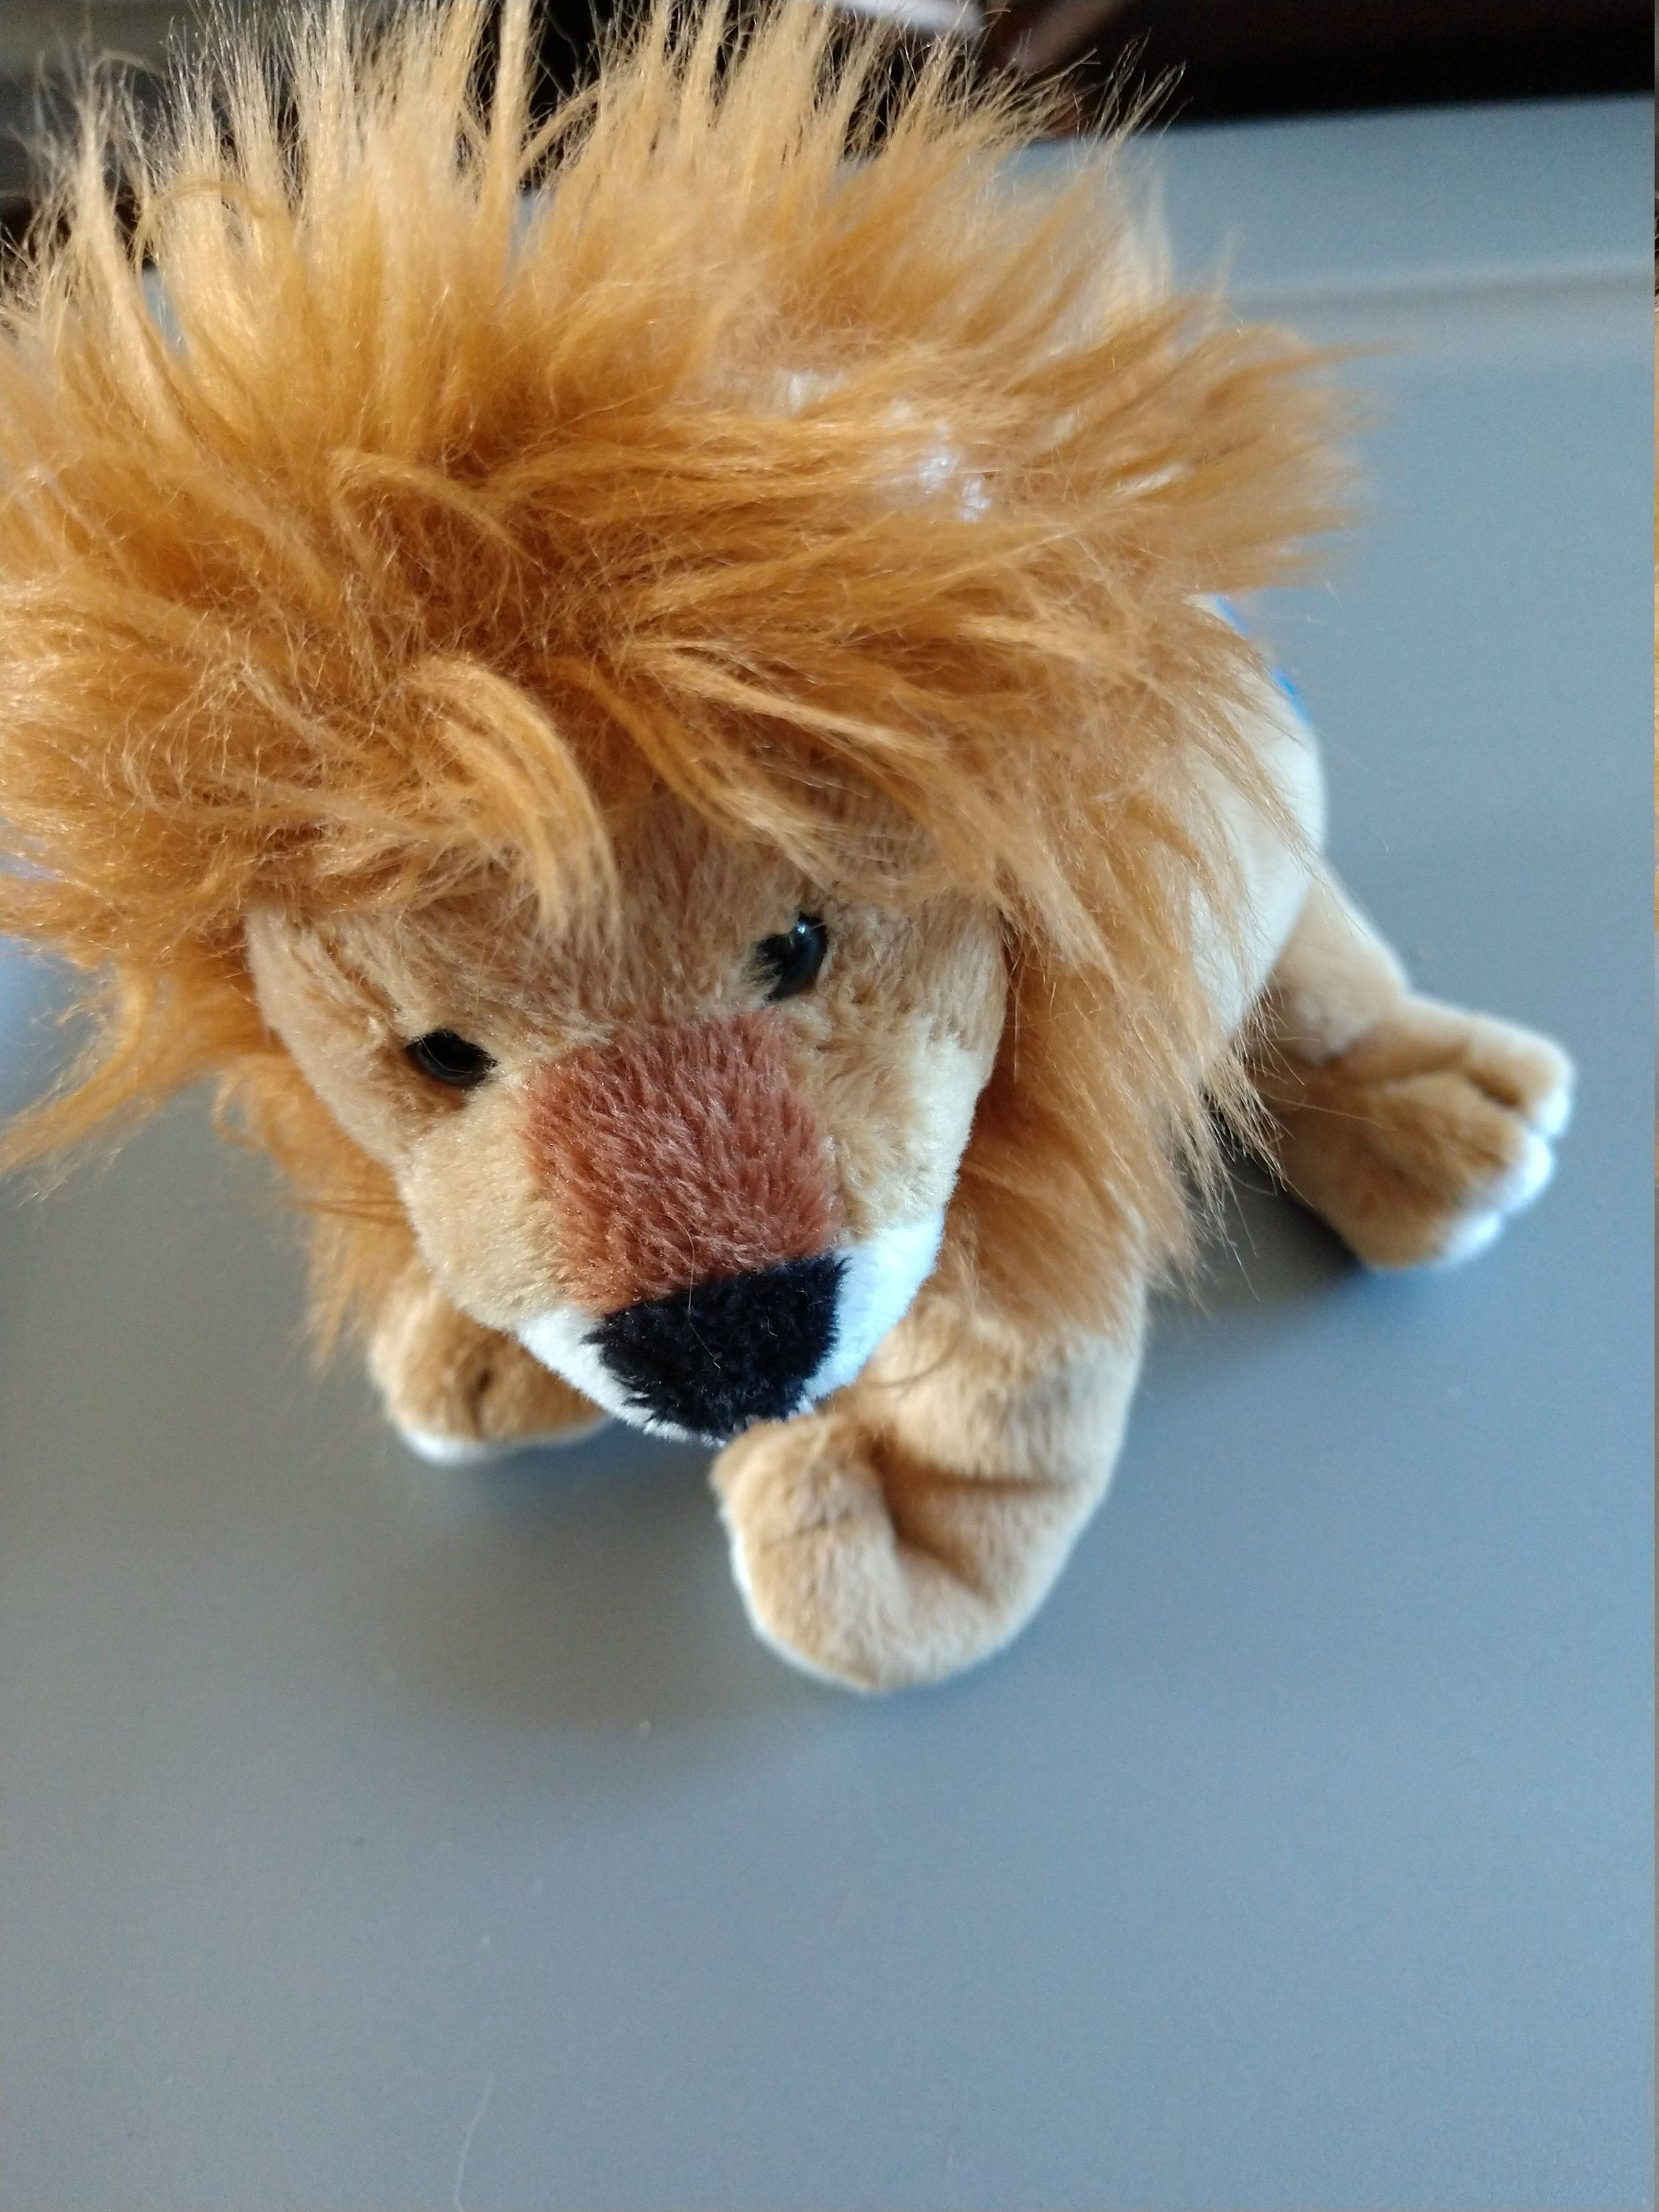 fc679f2a26f Midas the Lion - Ty Beanie Babies - 2008 by LabArcDesigns on Etsy ...